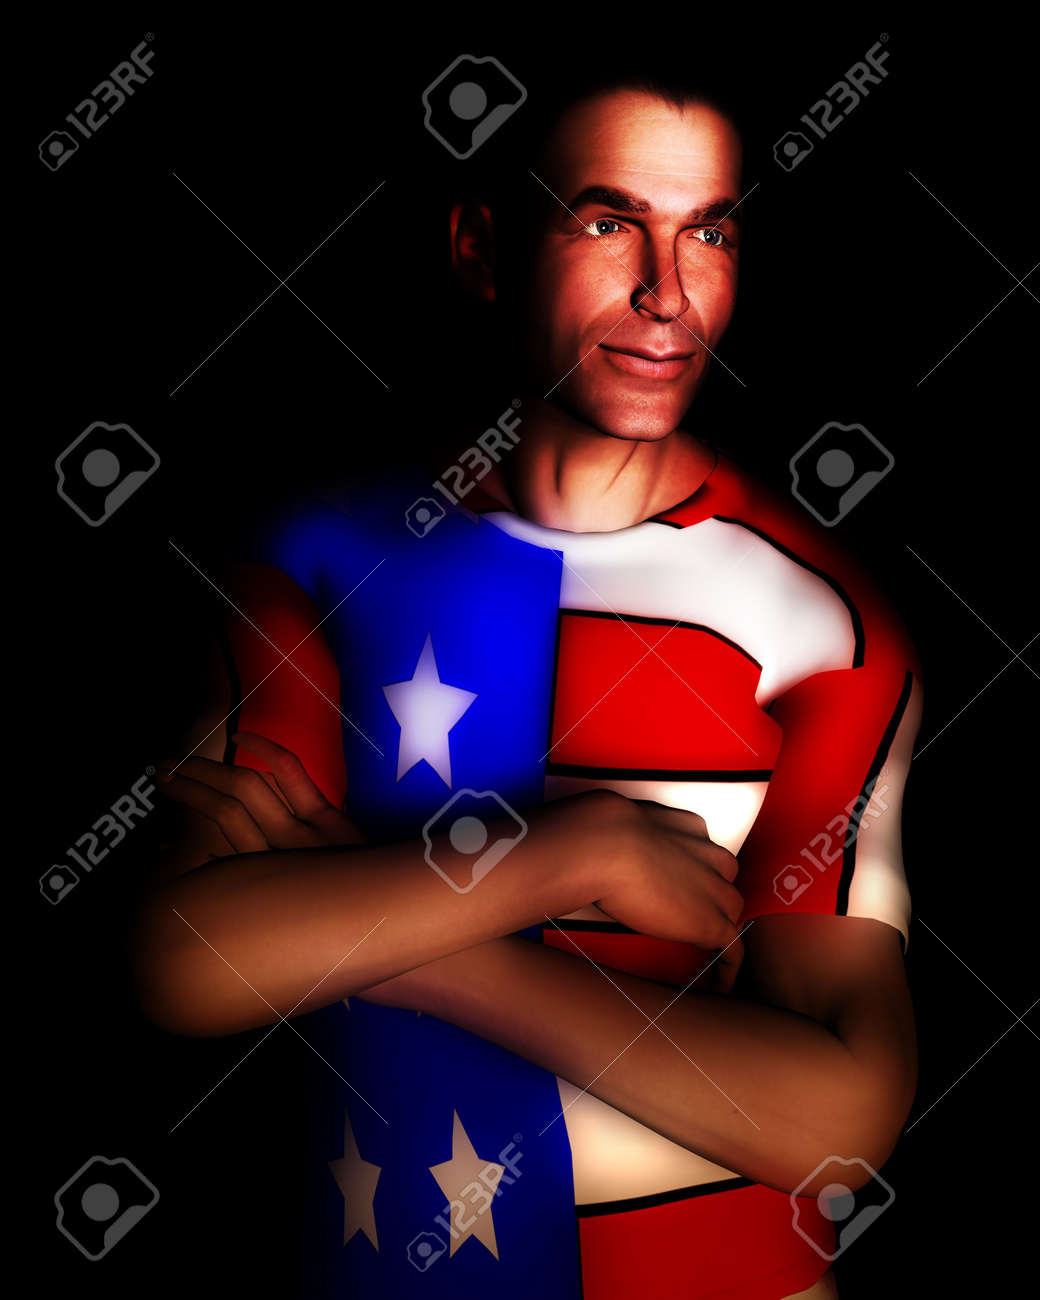 A man with the American flag on his clothing, a great image for every patriotic American. Stock Photo - 822204